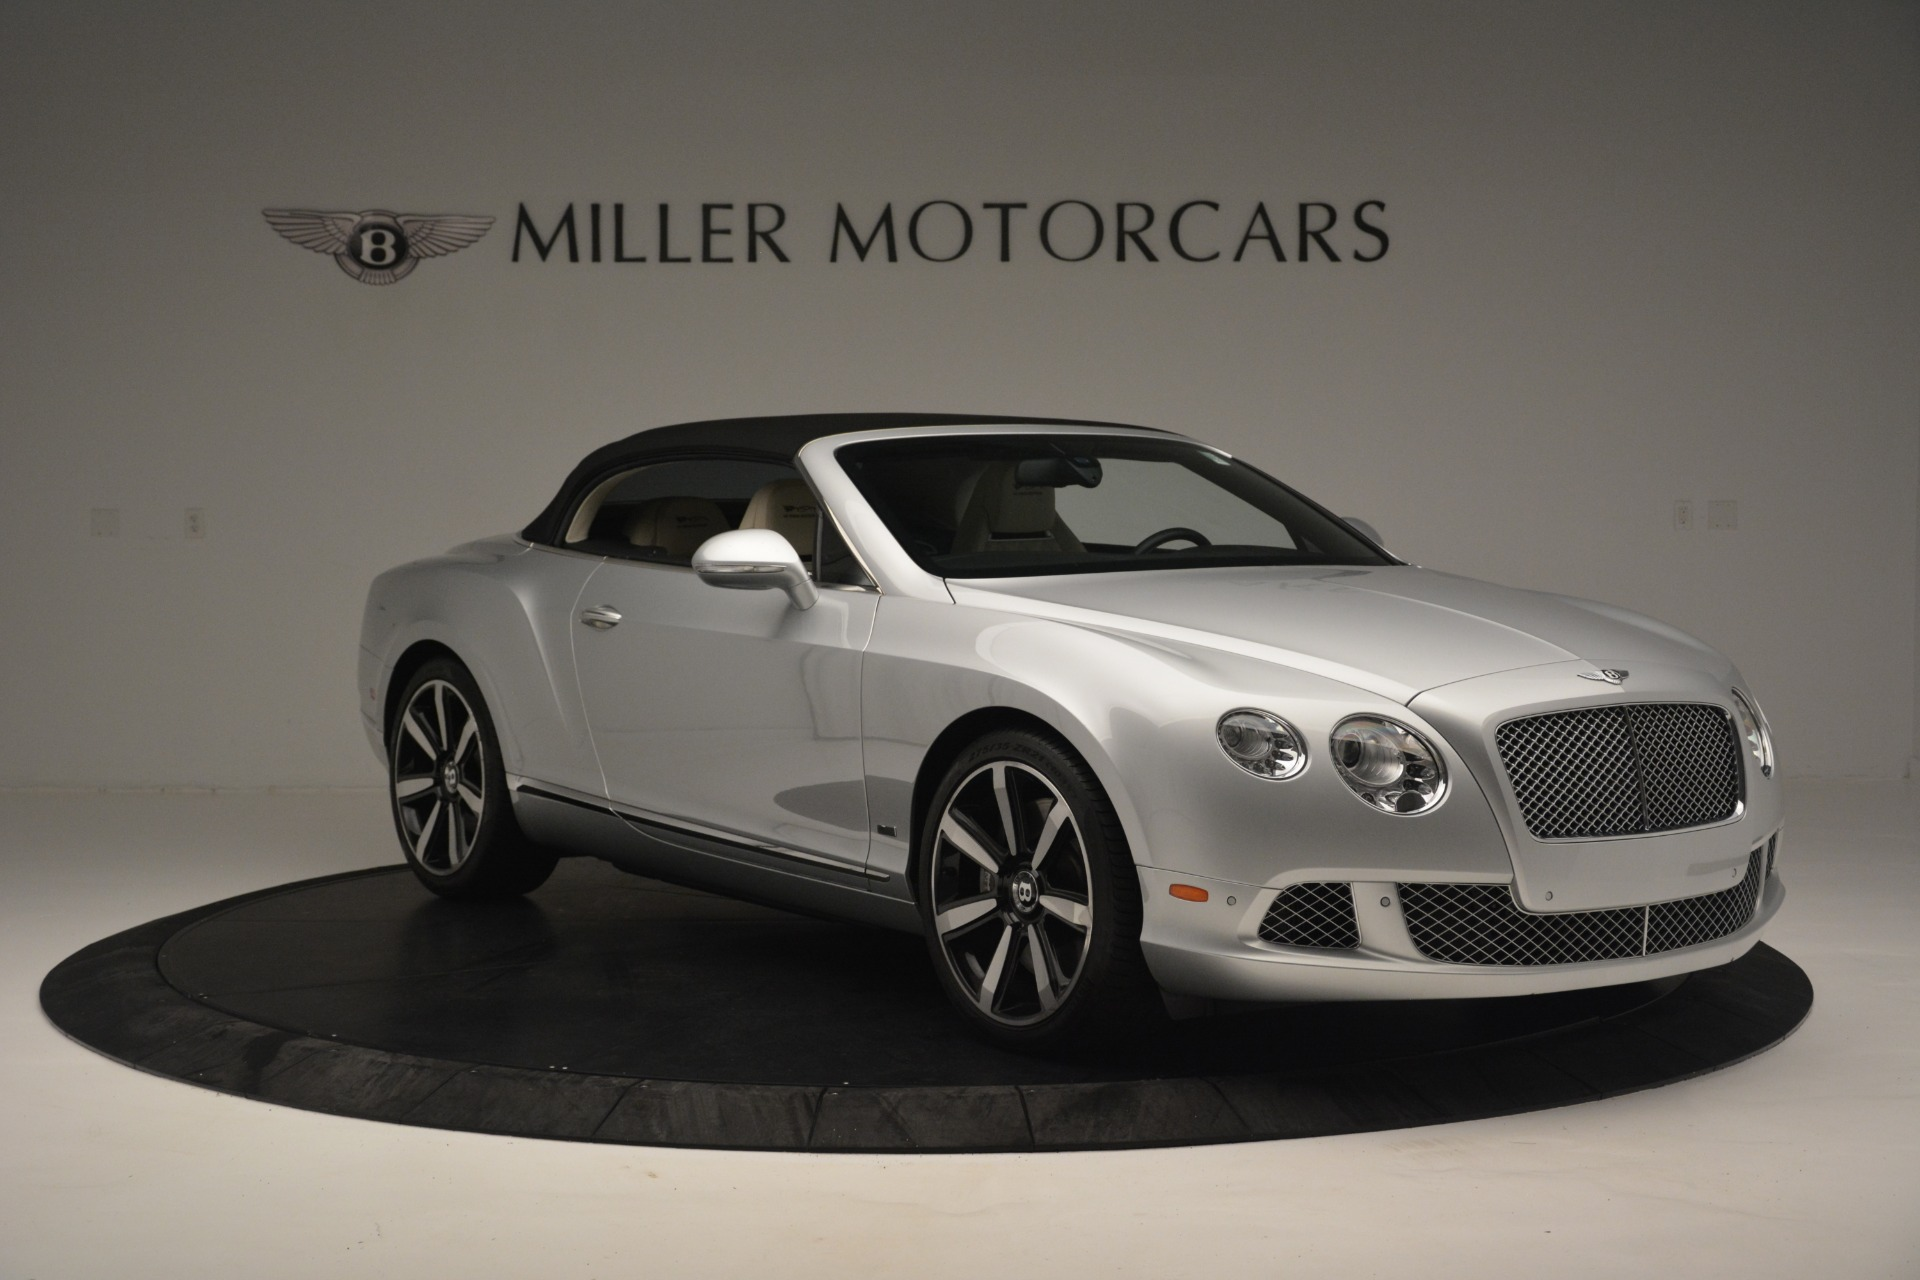 Used 2013 Bentley Continental GT W12 Le Mans Edition For Sale In Westport, CT 2519_p16